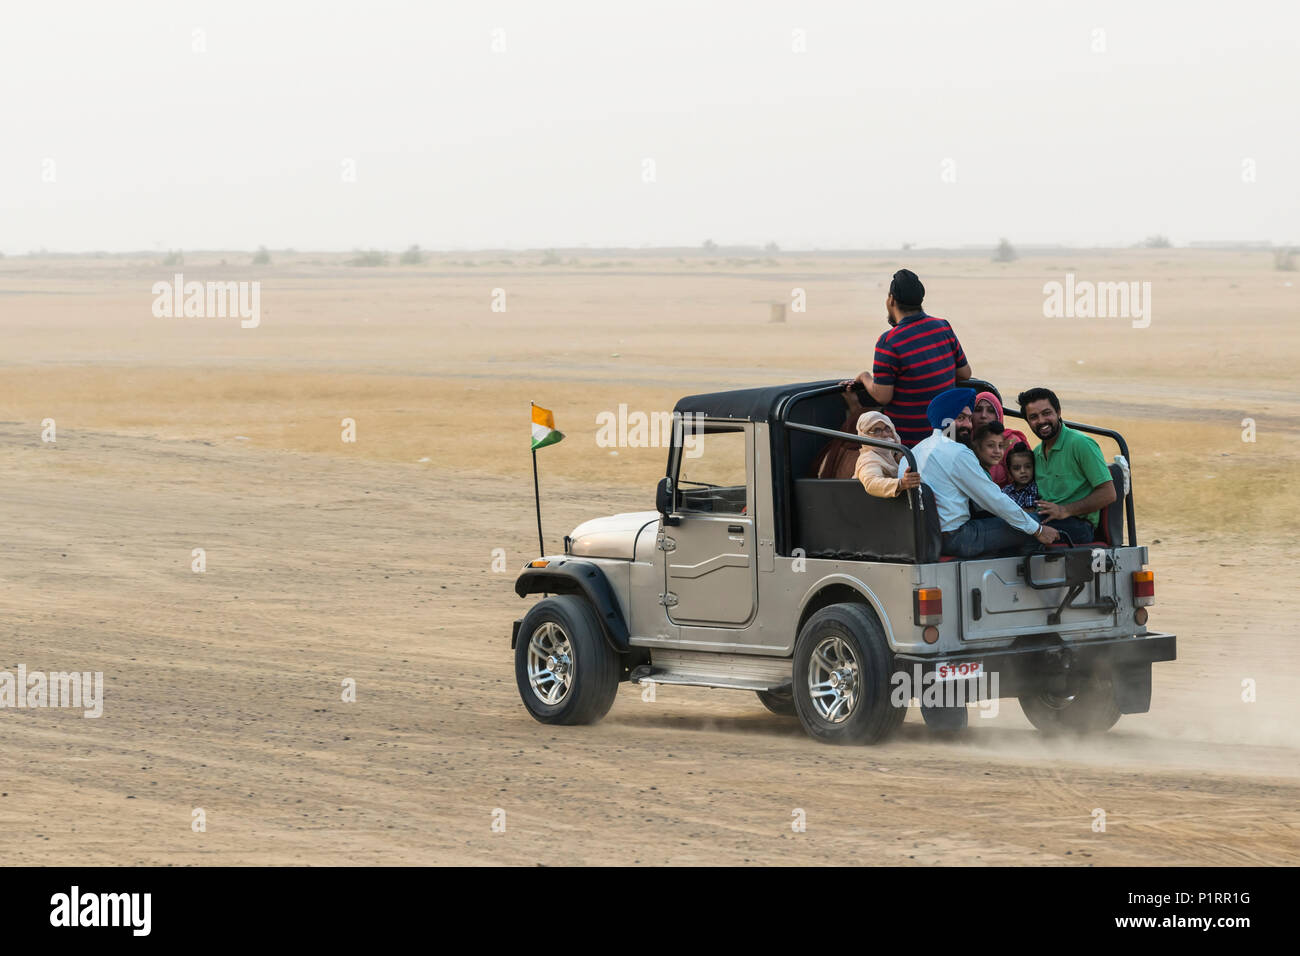 A family rides in the back of a recreational vehicle exploring the Sam sand dunes; Damodara, Rajasthan, India - Stock Image